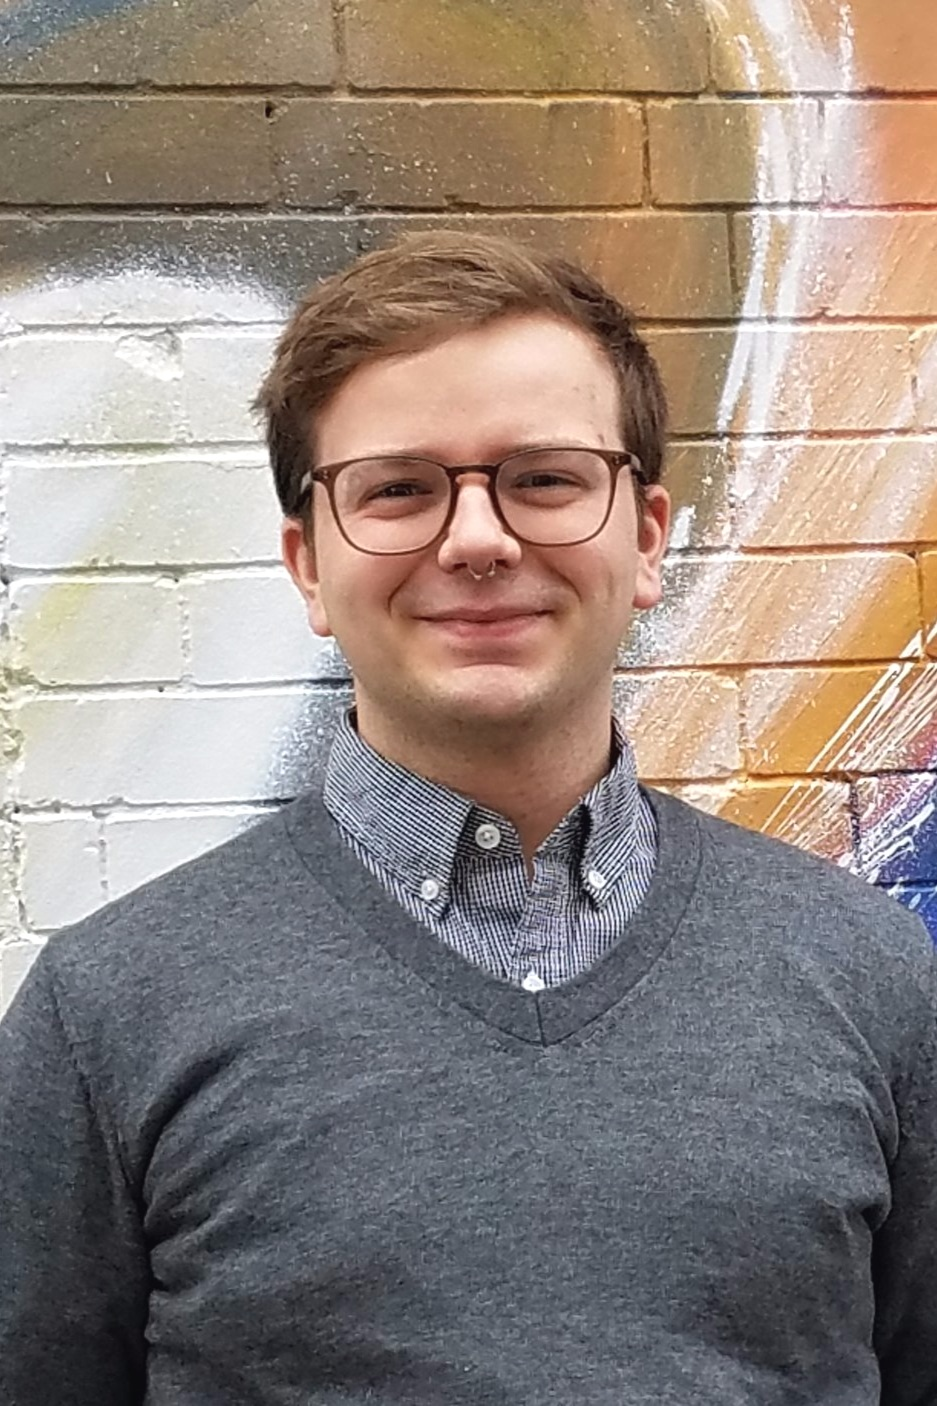 Colby Kyes, Research Intern  Education: A.L.B. Environmental Studies, Harvard Extension School '21,  Hometown: Seattle, WA Best thing you've read recently: Anti-Semite and Jew by Jean-Paul Sartre Favorite place in Boston: Petsi Pies